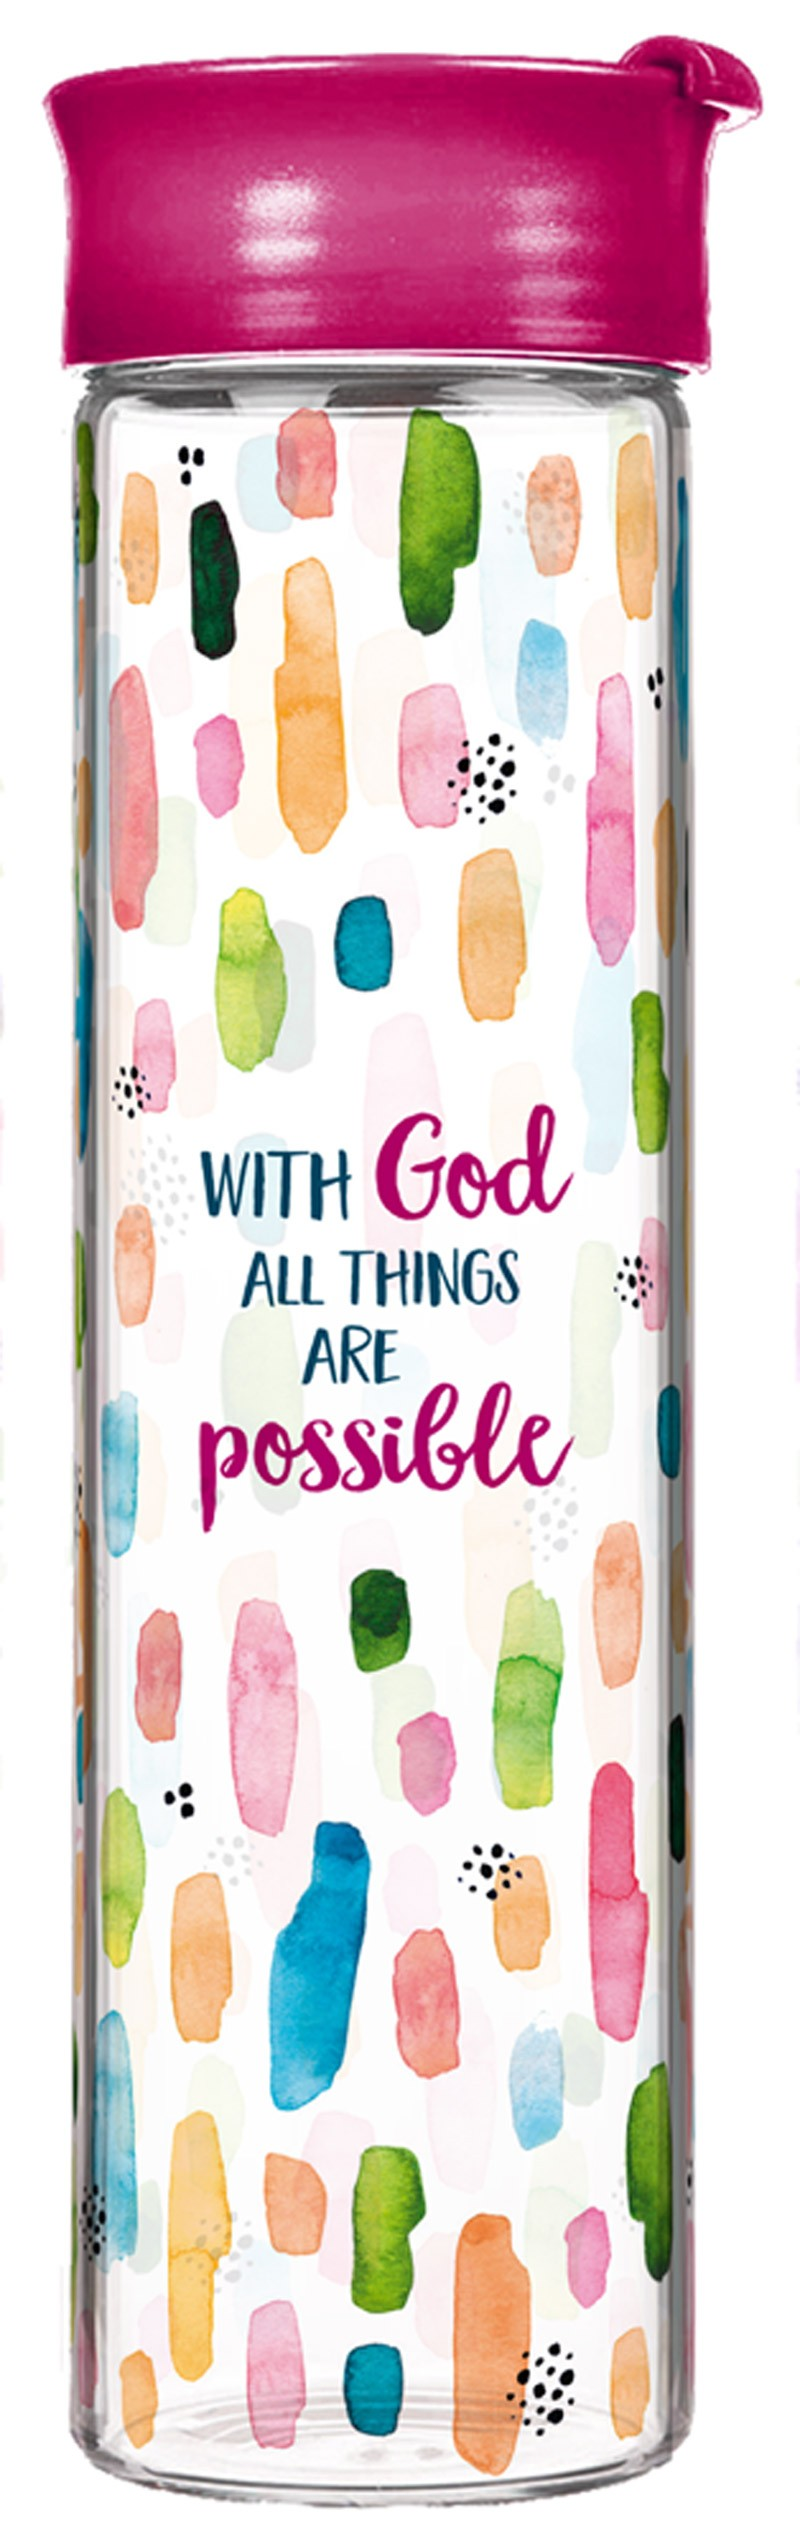 "Glasflasche ""With God all things are possible"""